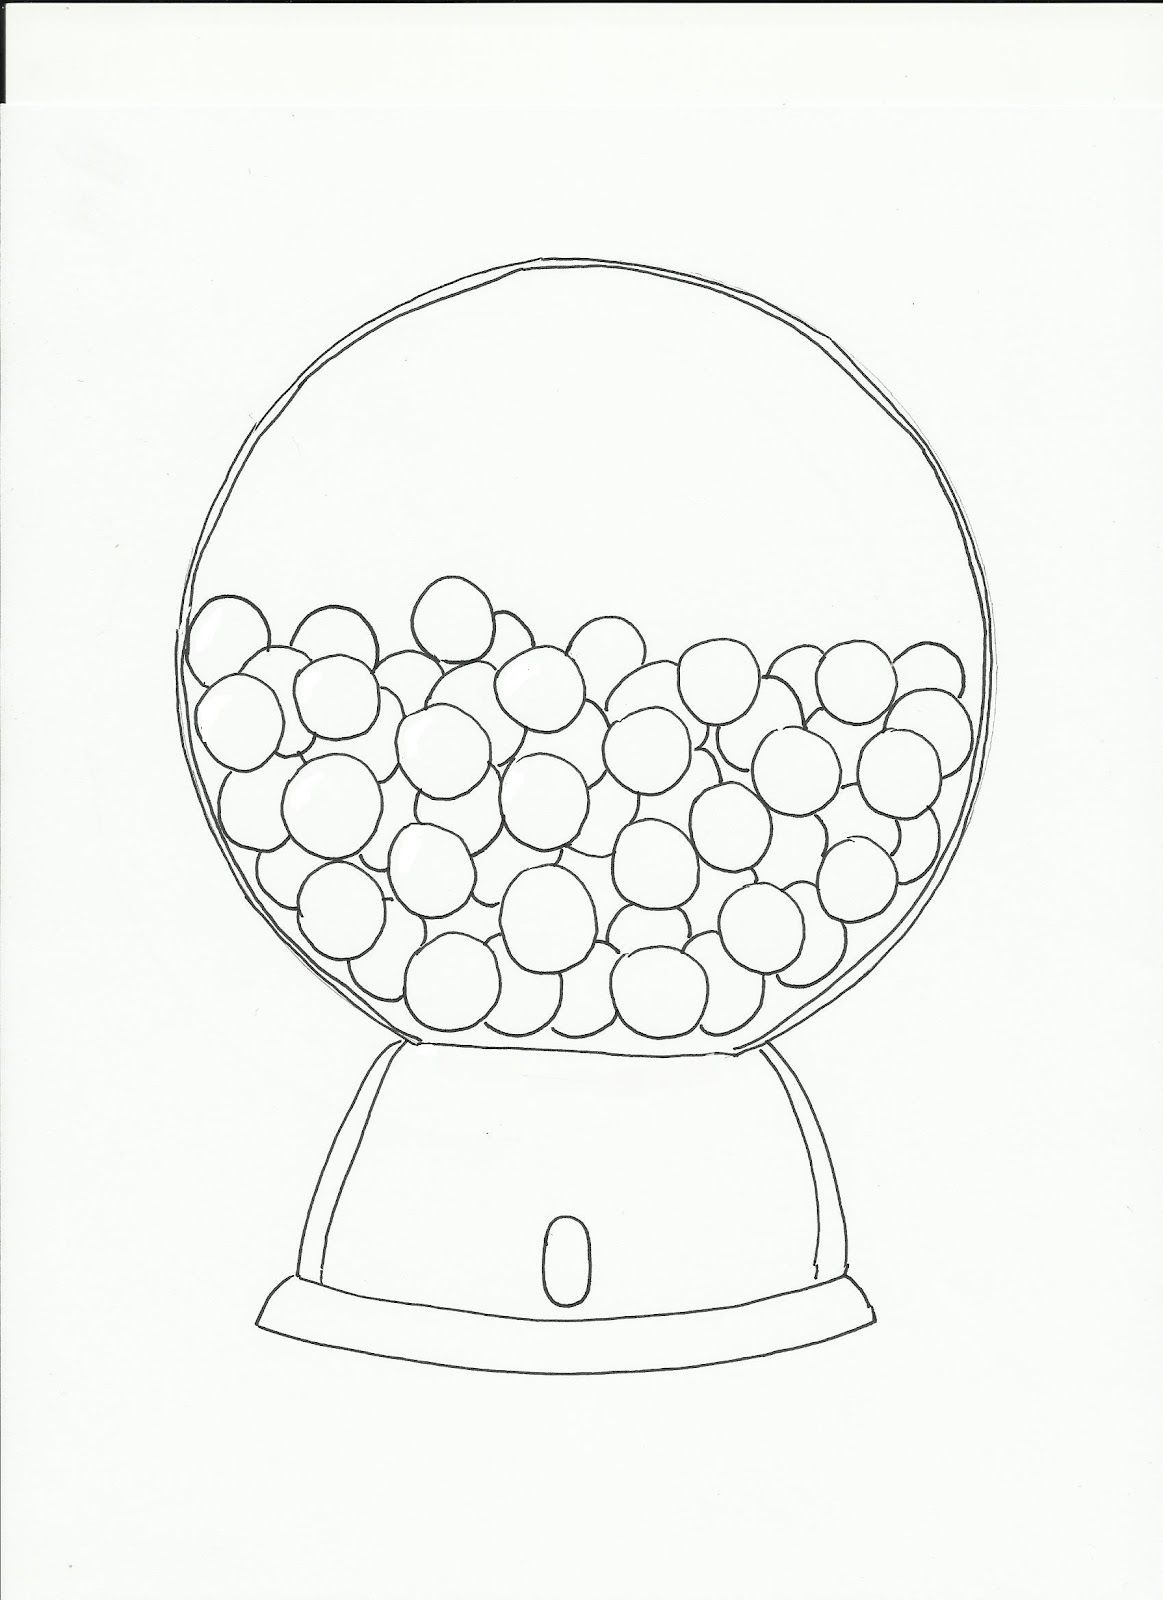 Gumball Machine Template Sketch Coloring Page